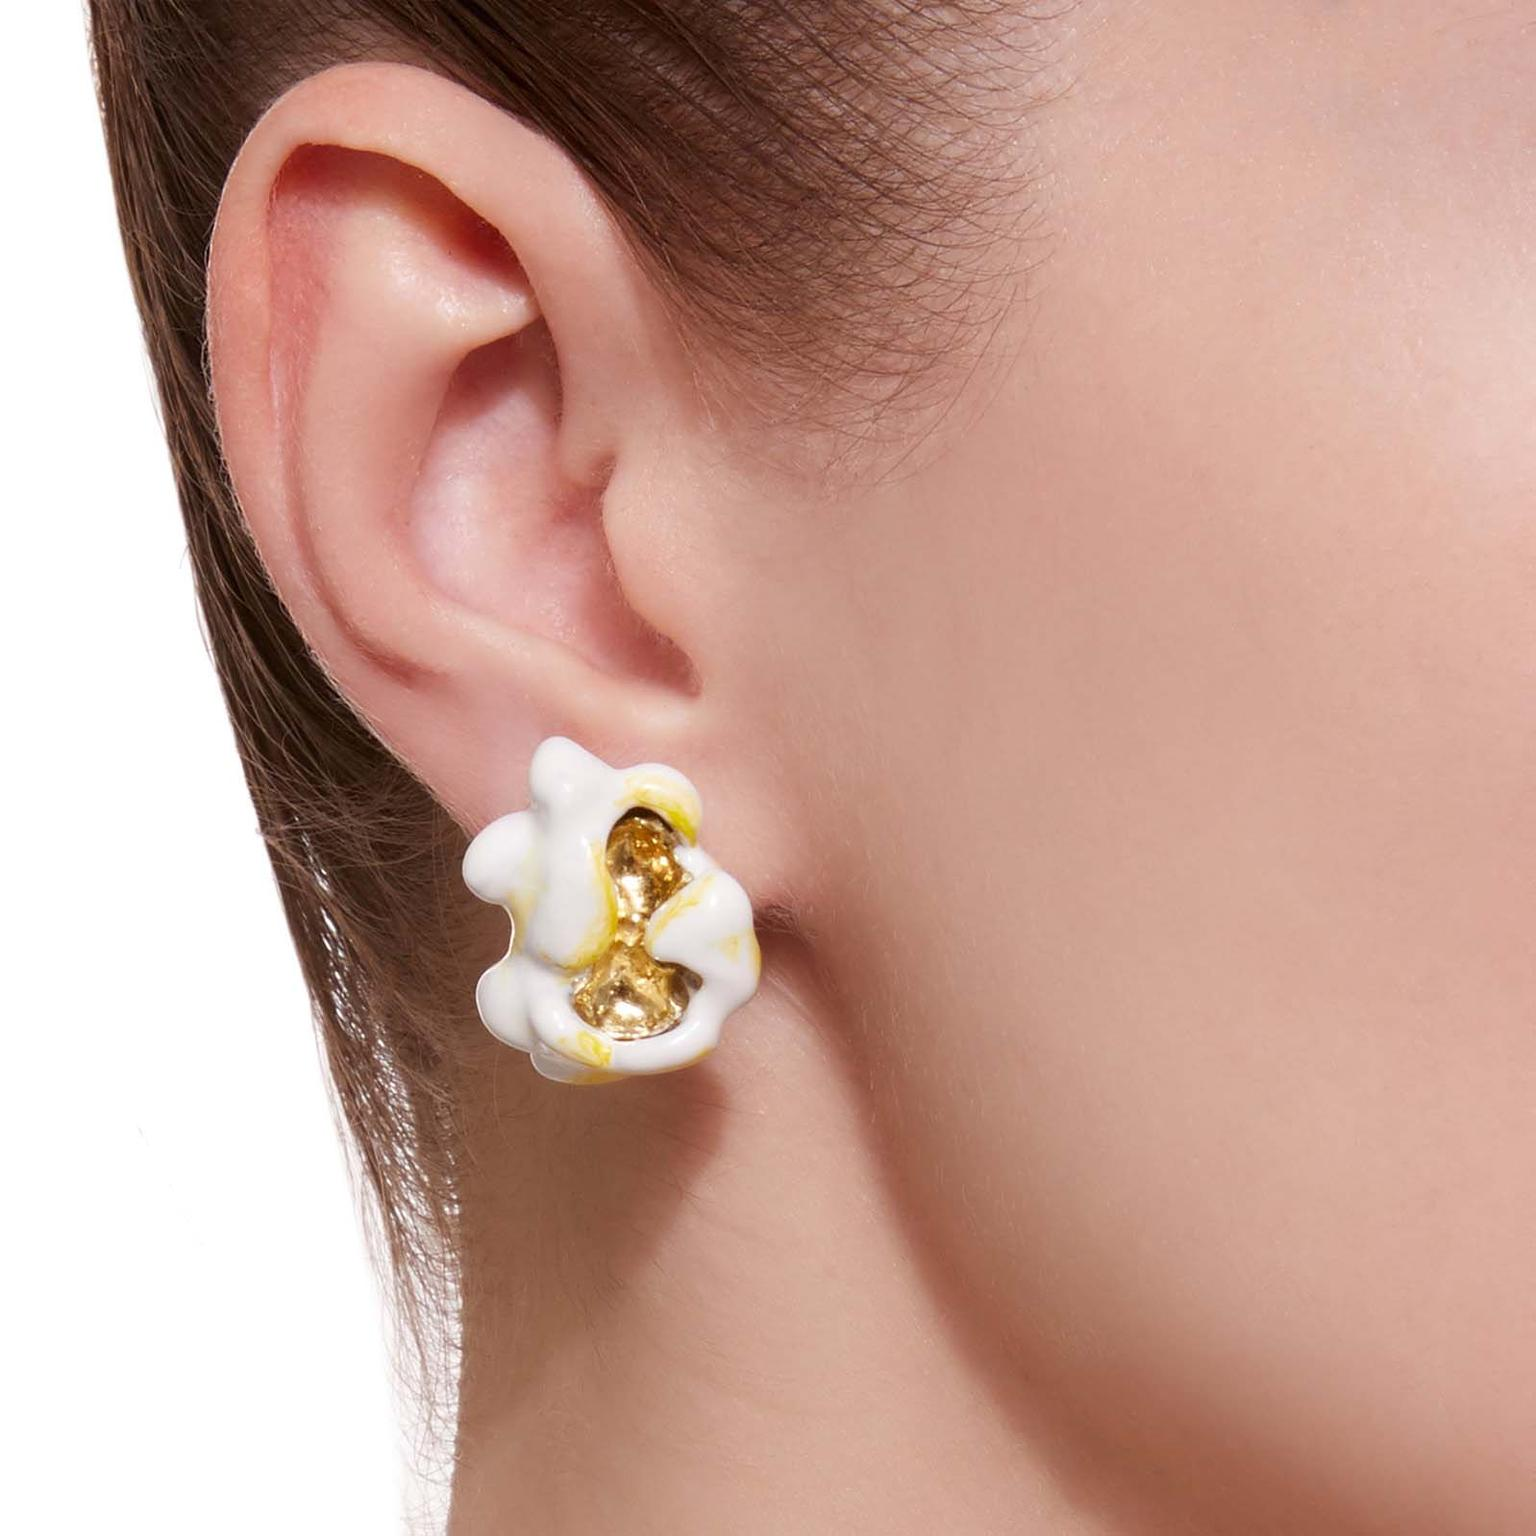 Luz Camino Pop Corn earrings on